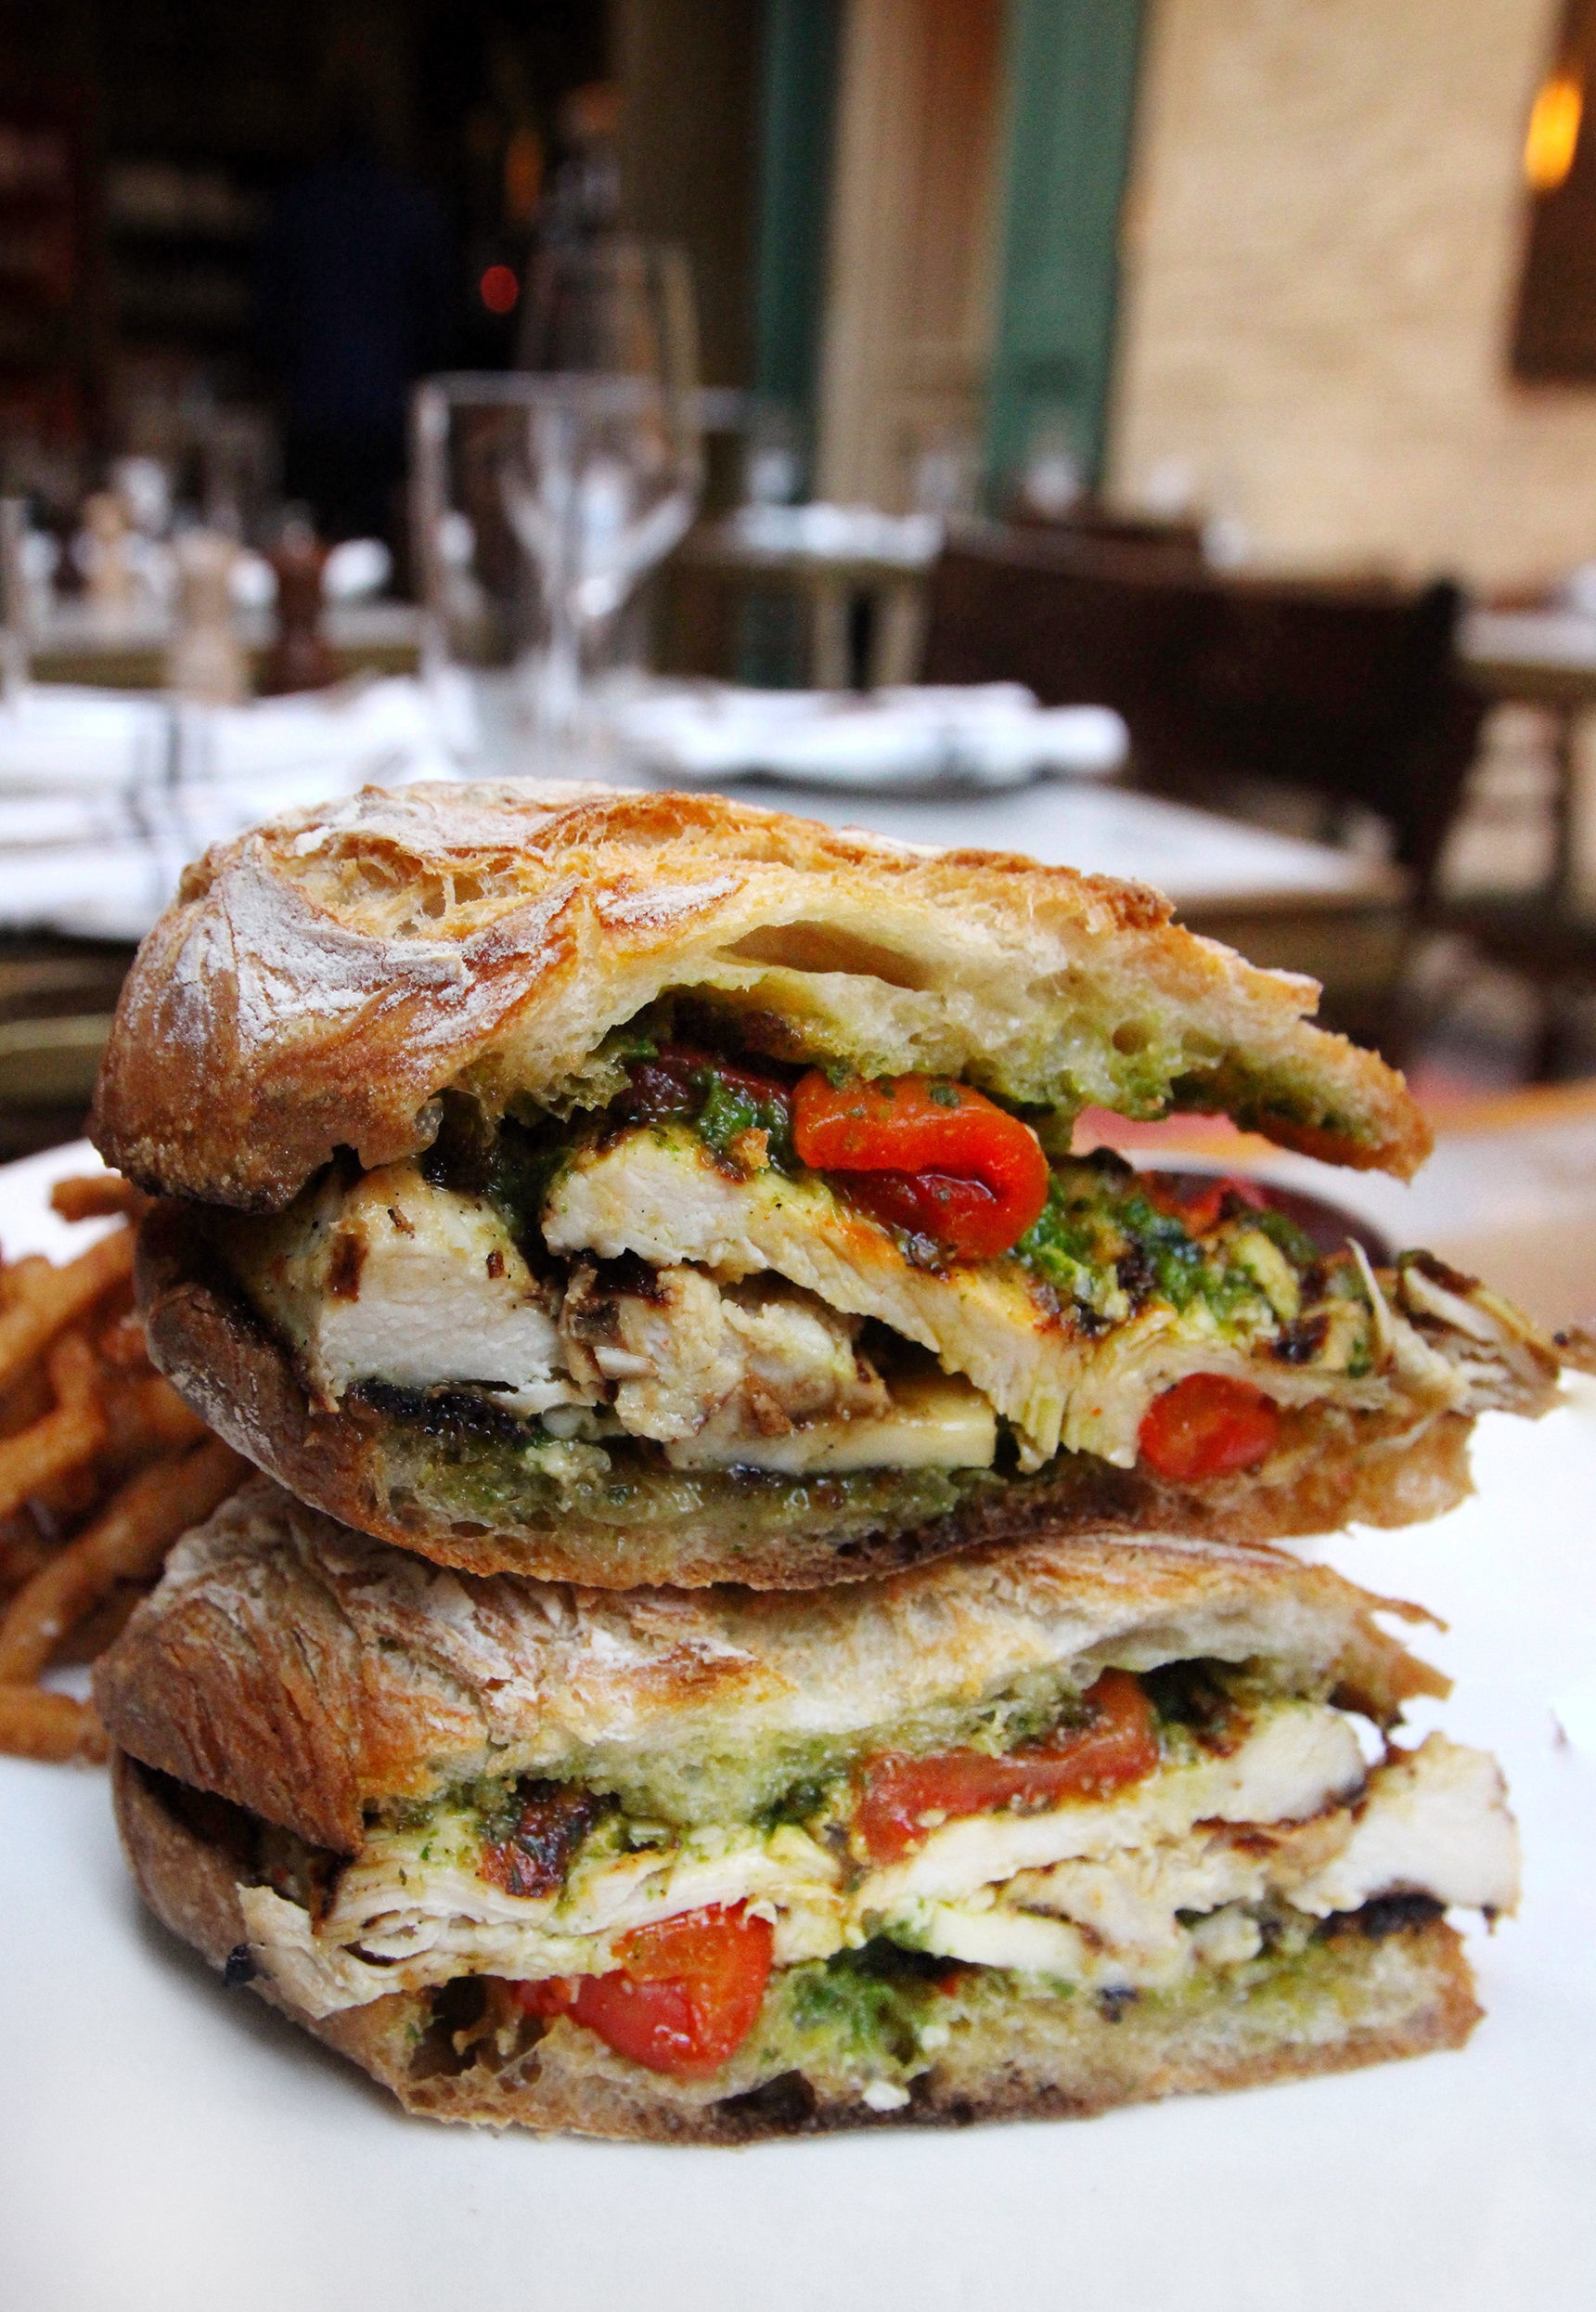 Grilled Chicken with Pesto Sandwich